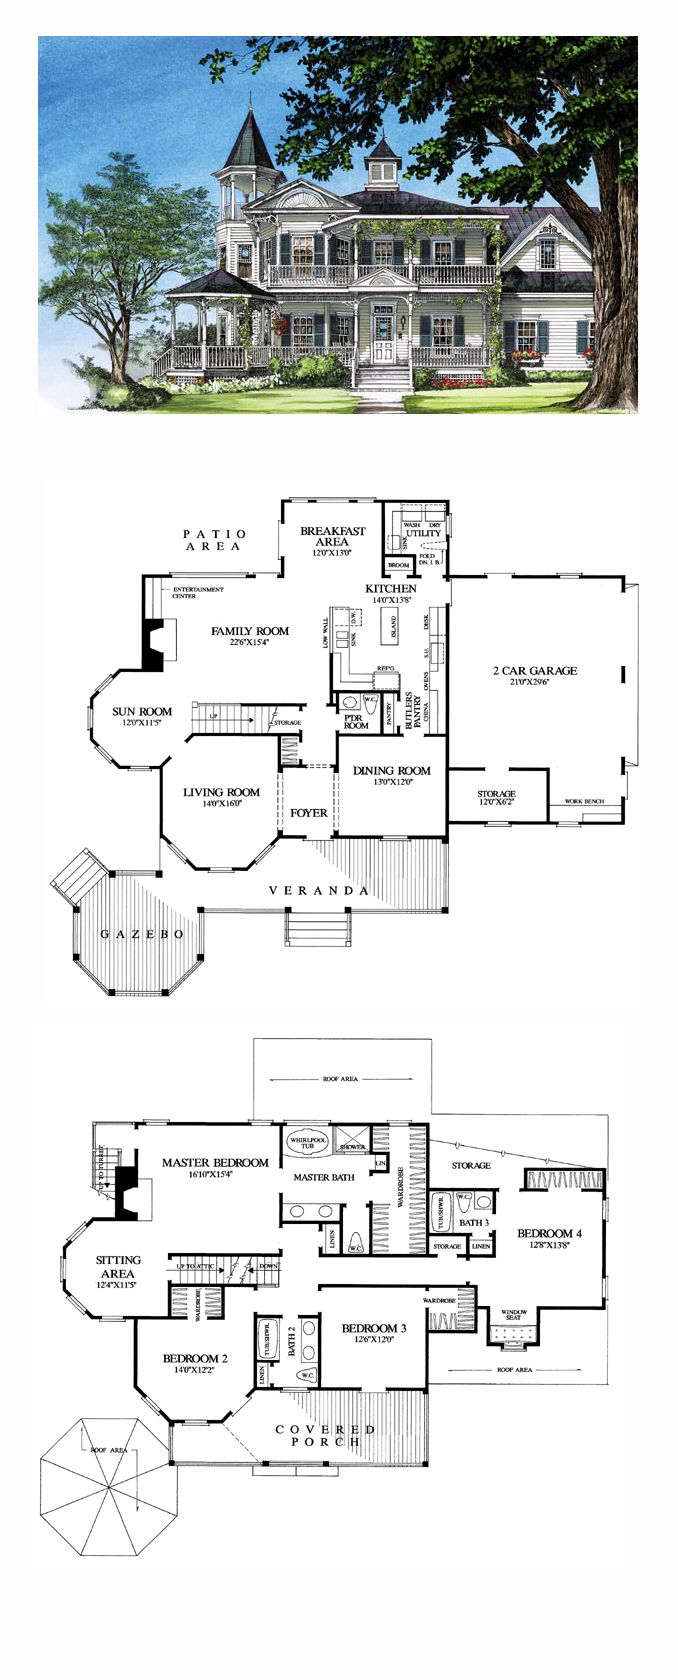 17 Best ideas about Victorian House Plans on Pinterest Sims 3